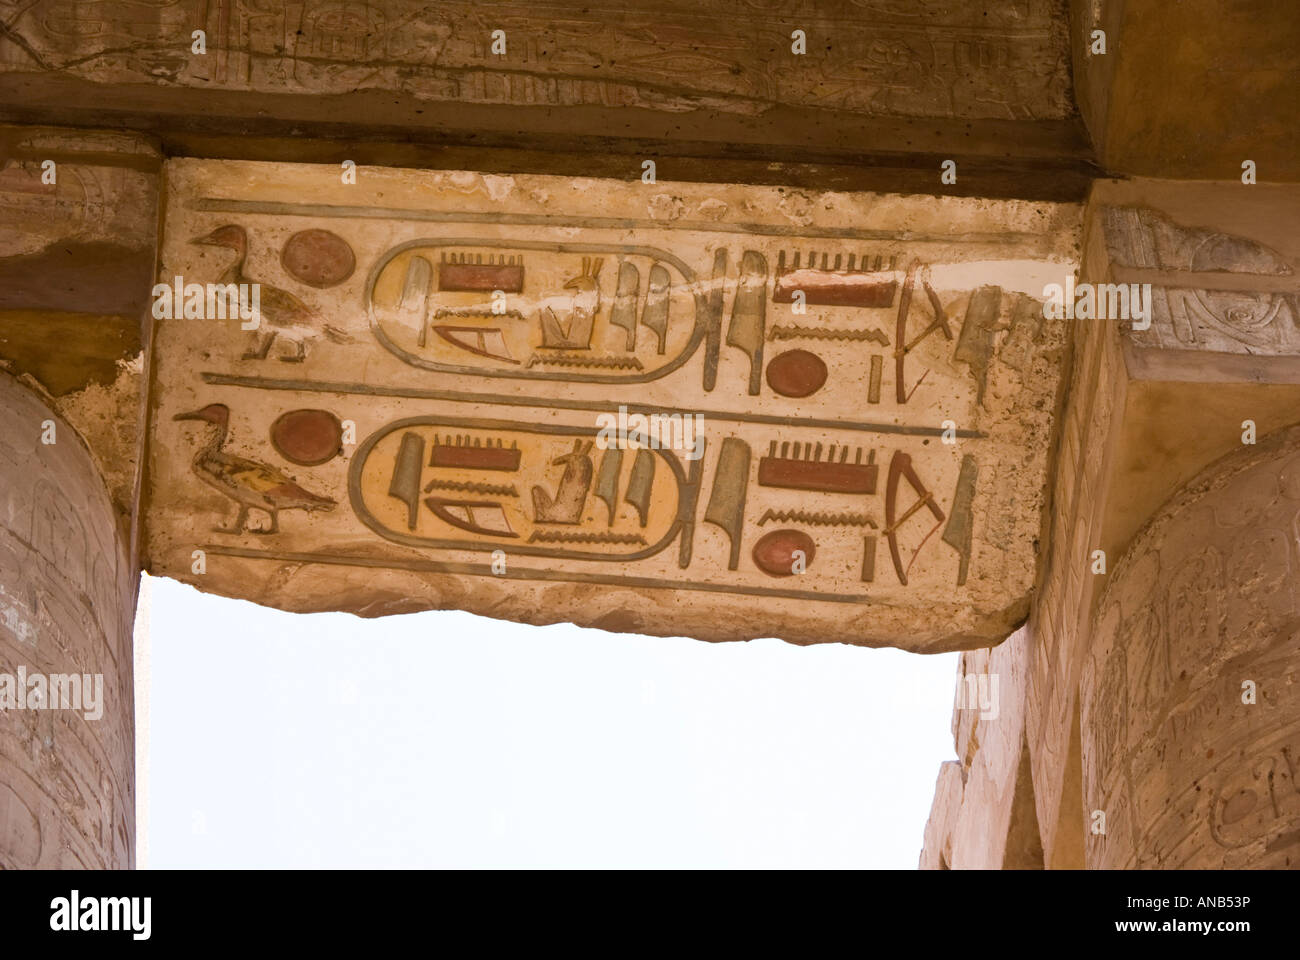 Egypt Luxor Karnak Temple surving parts of the Great